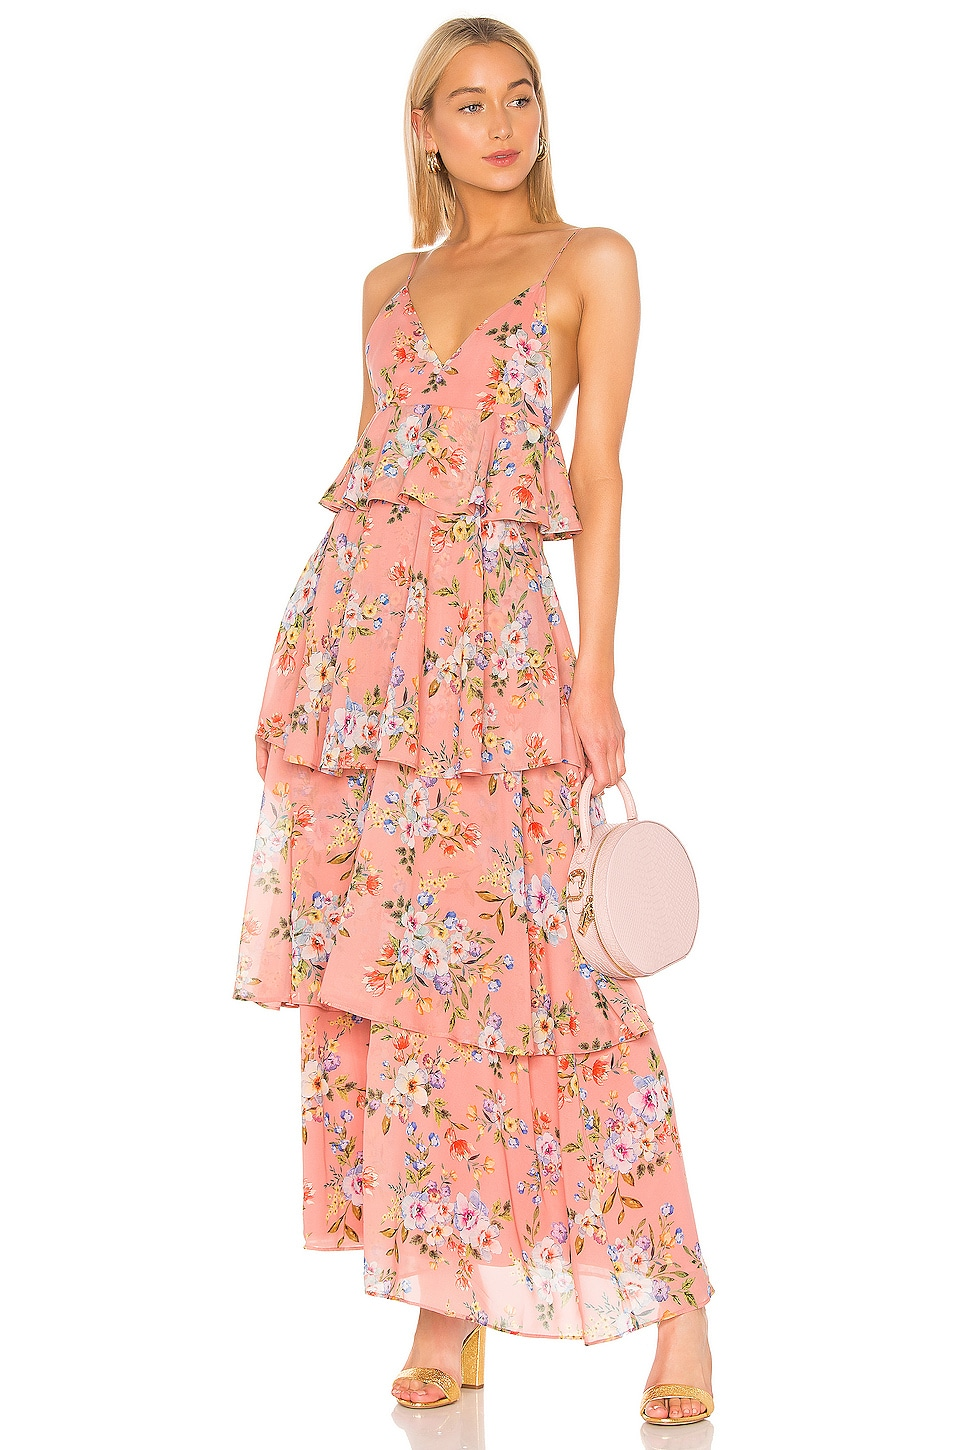 House of Harlow 1960 X REVOLVE Nel Dress in Rose Floral